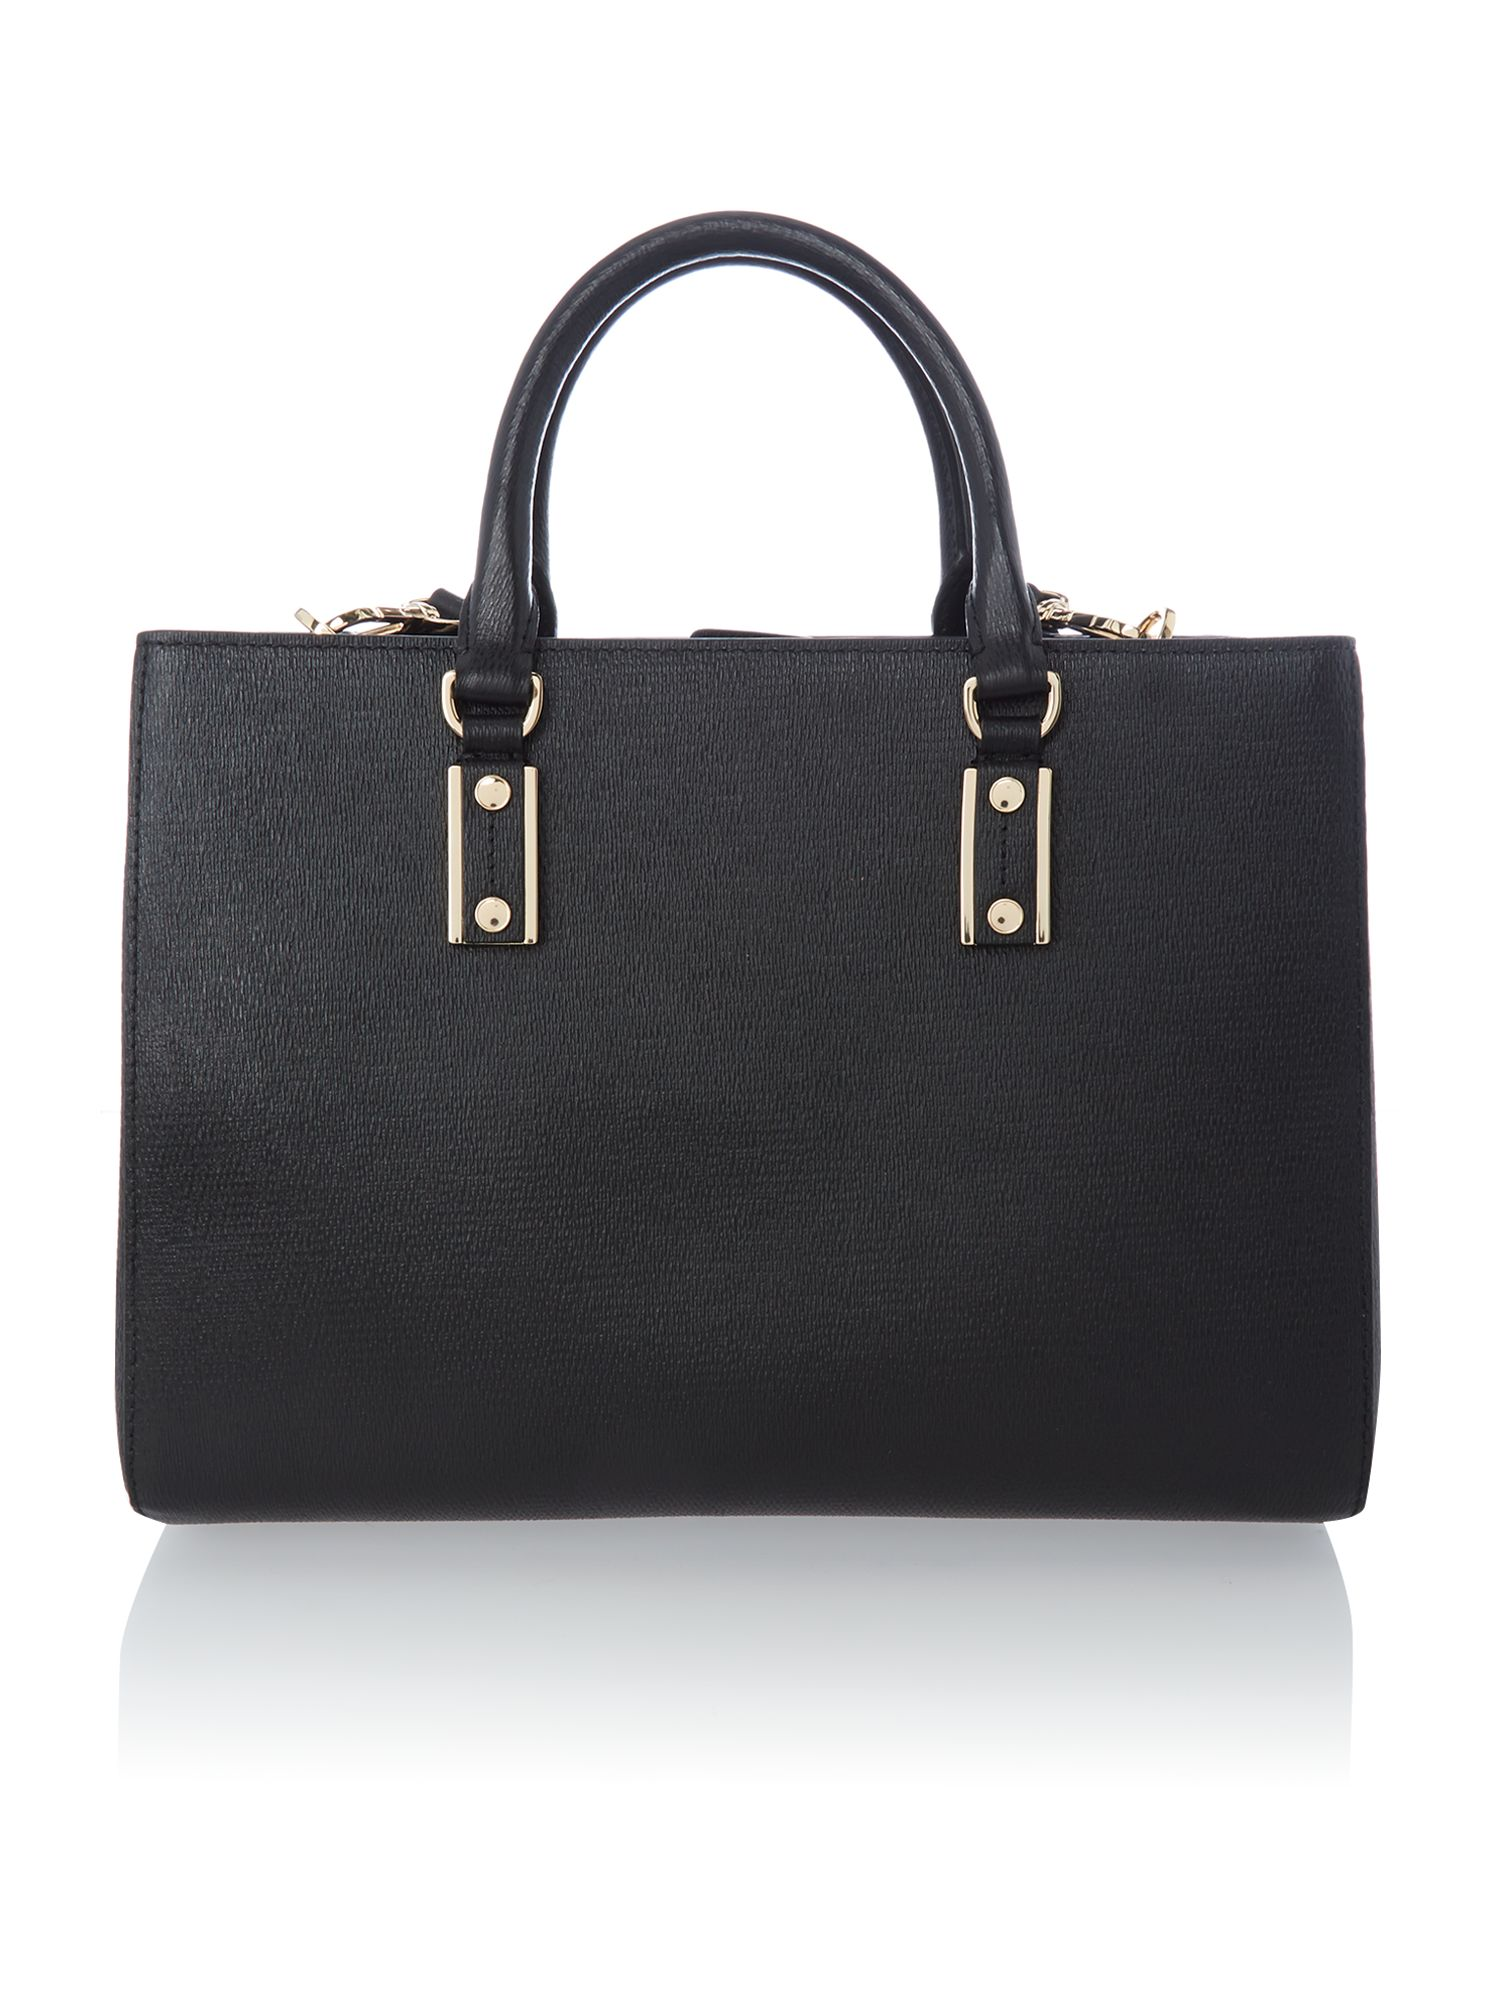 Mila black tote bag